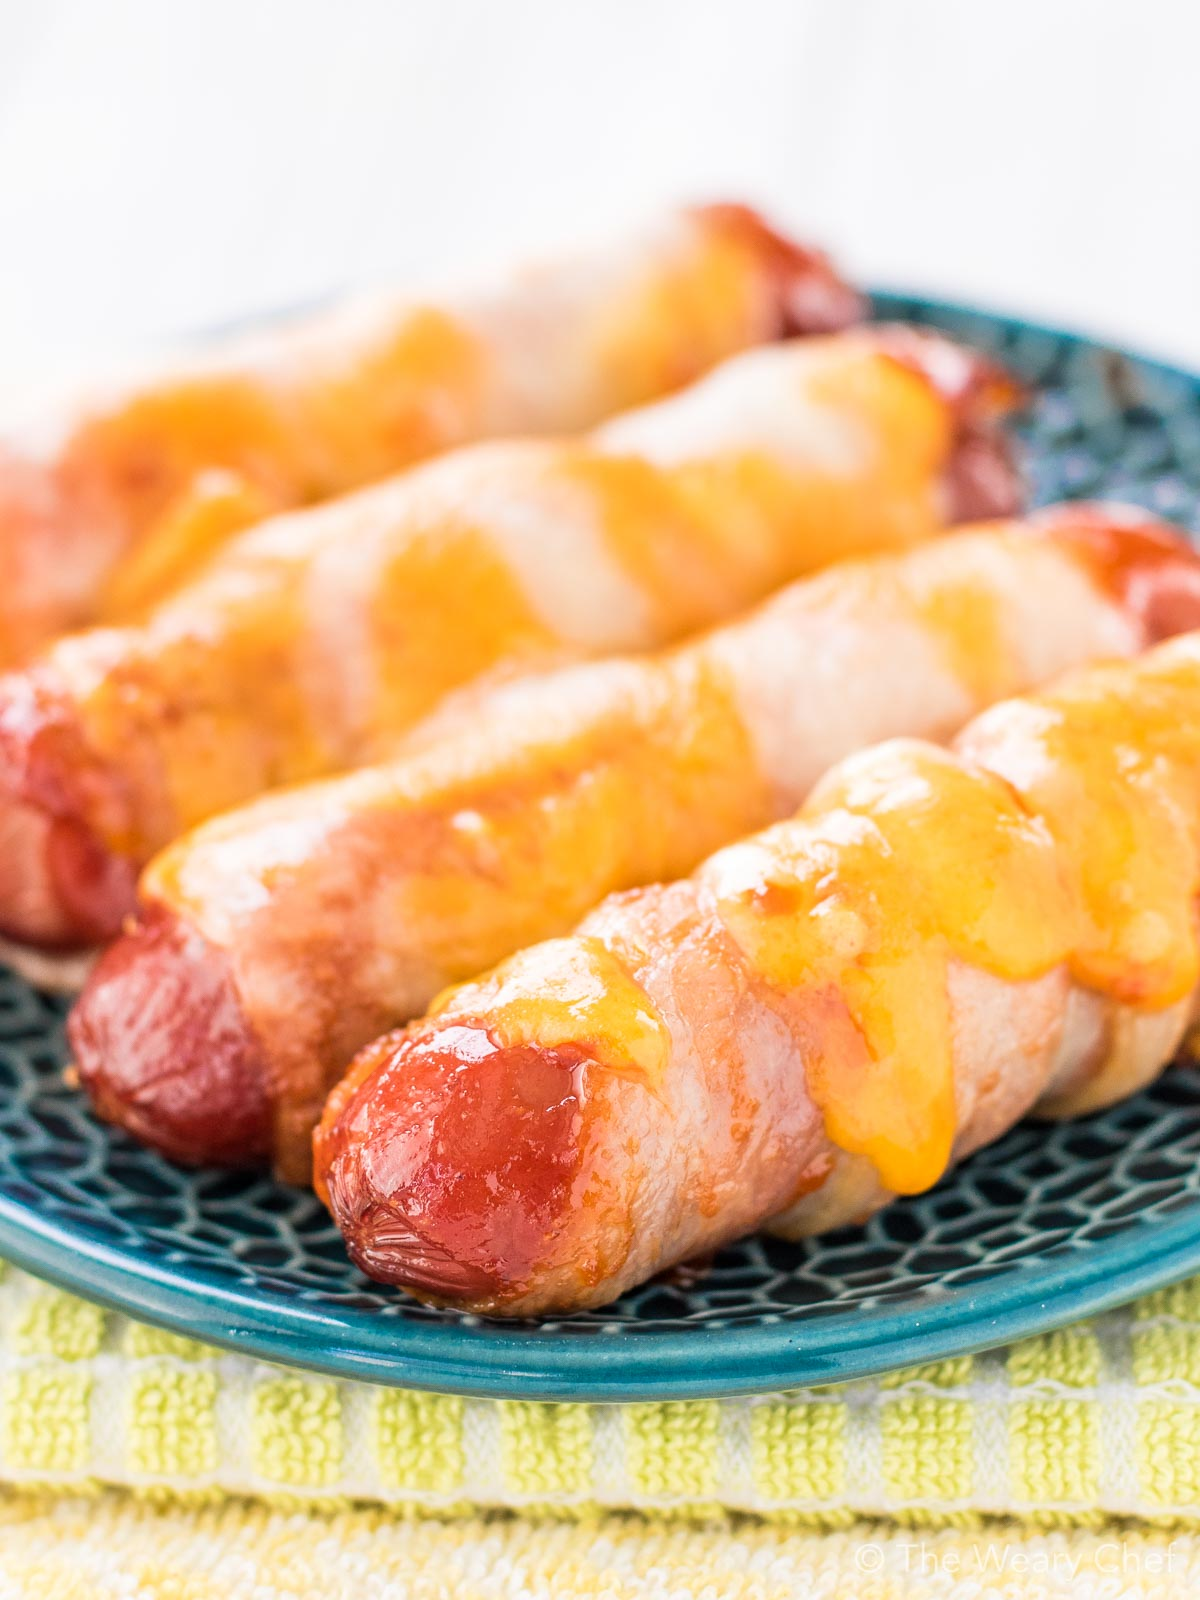 These cheesy BBQ Bacon Wrapped Hot Dogs are fun and easy to make. Perfect for the oven or grill. Serve them on buns or on their own for a lower carb treat!